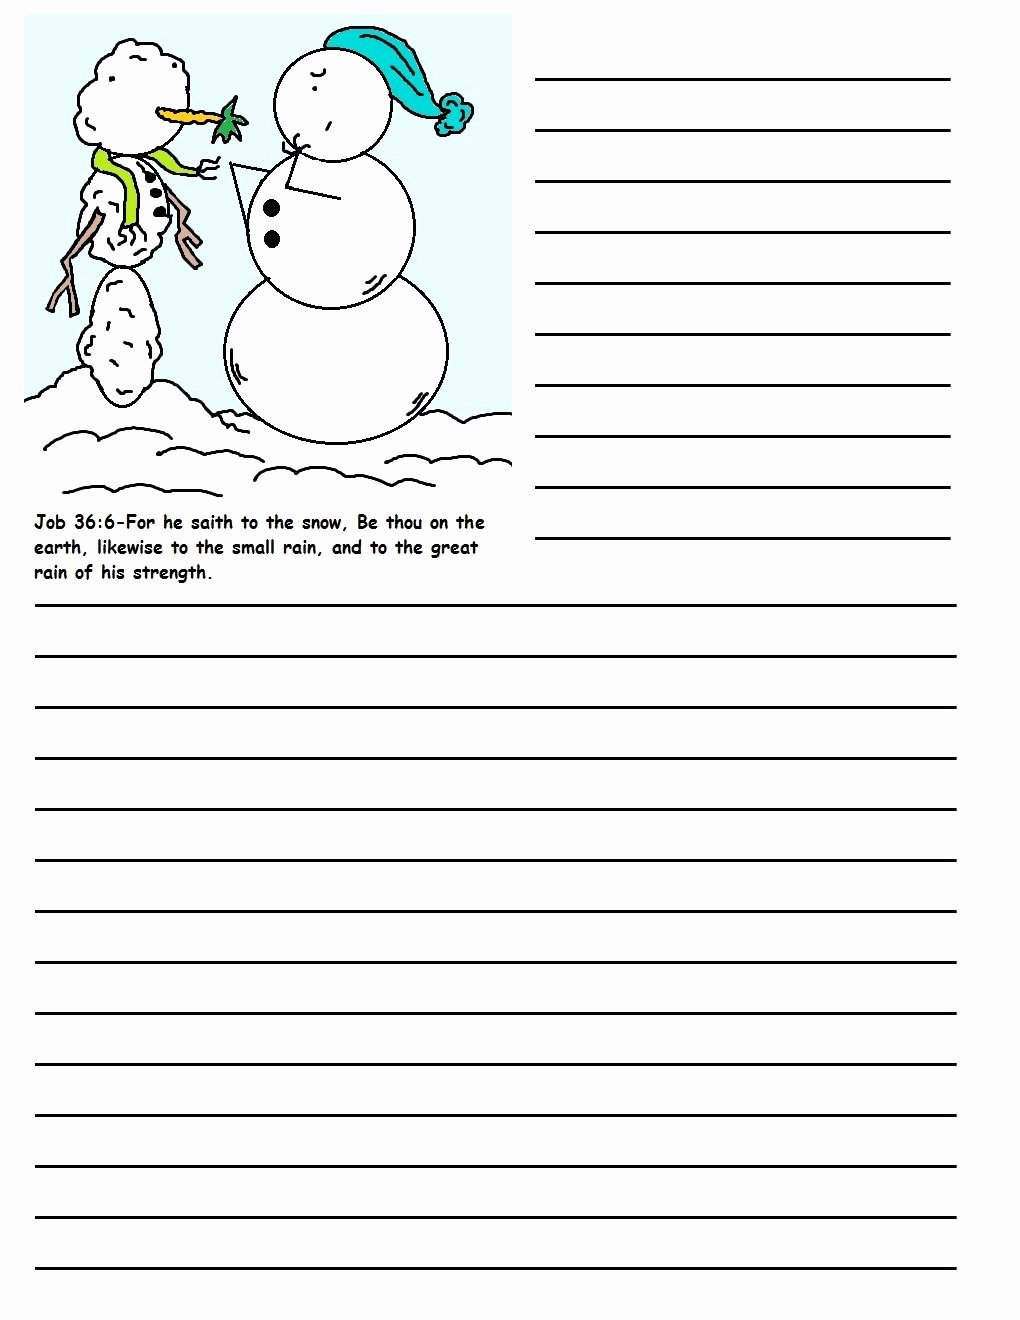 Free Printable Writing Paper New Christmas Printable Writing Paper